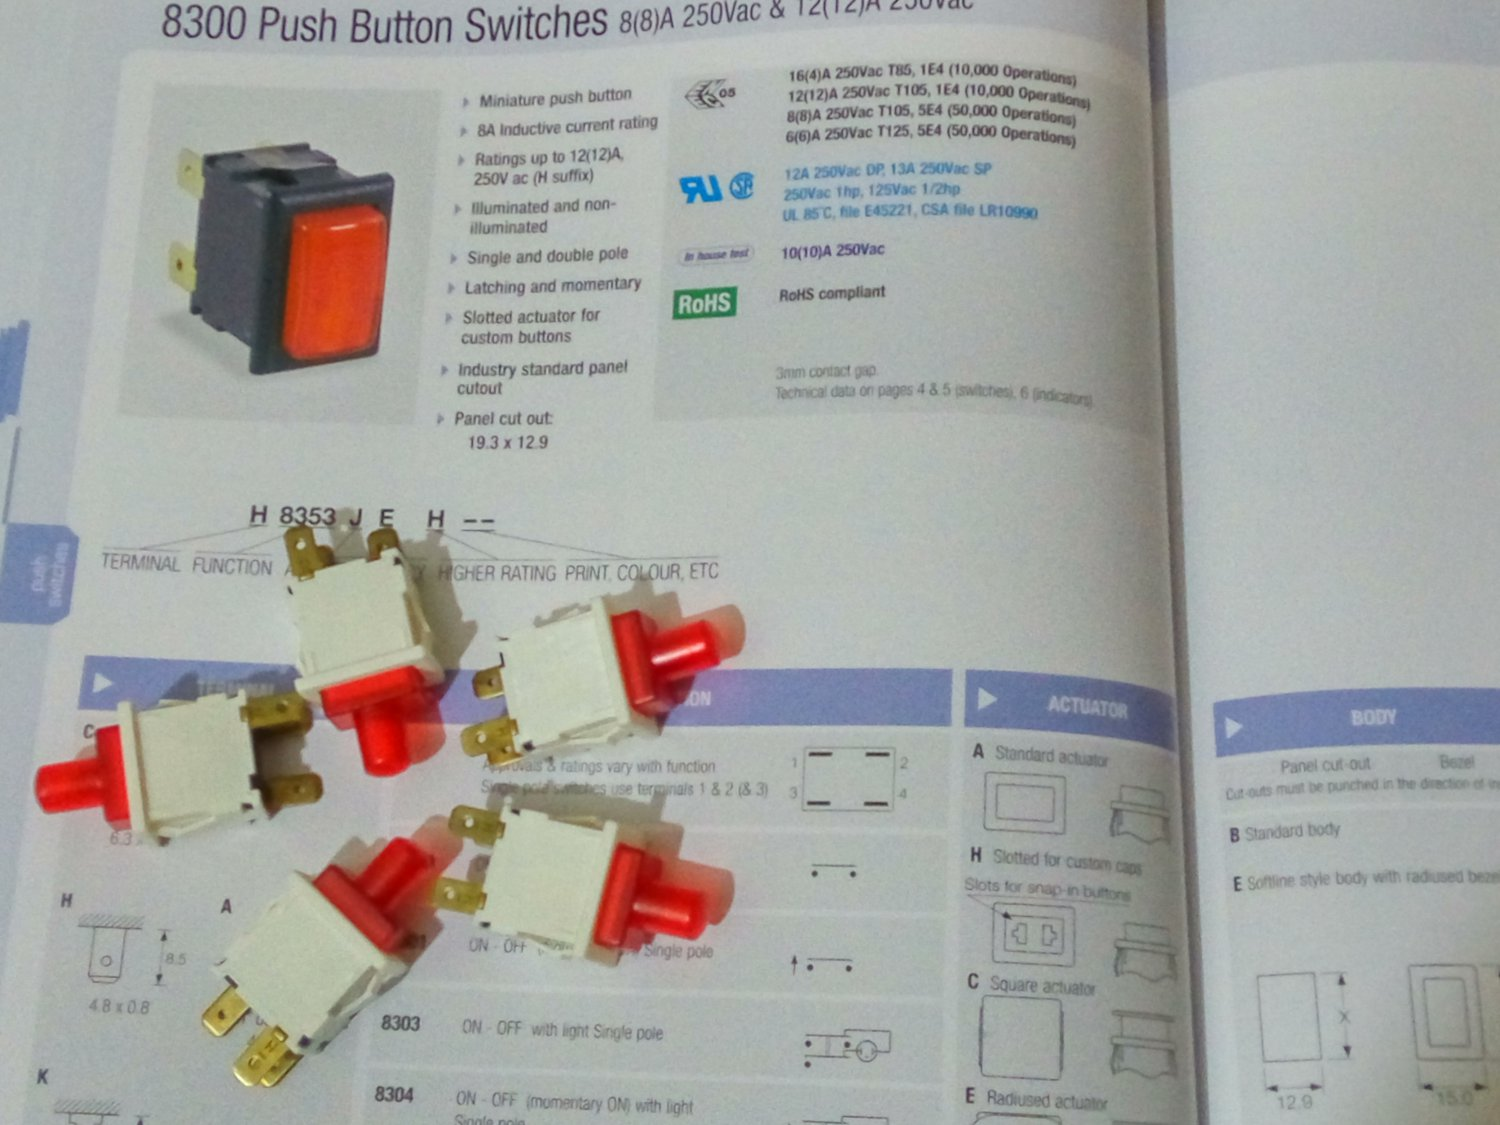 Arcolectric Push Button Switches On-Off w/Light Single Pole 8(8)A 250Vac (Red White) (Lot of 5 pcs)